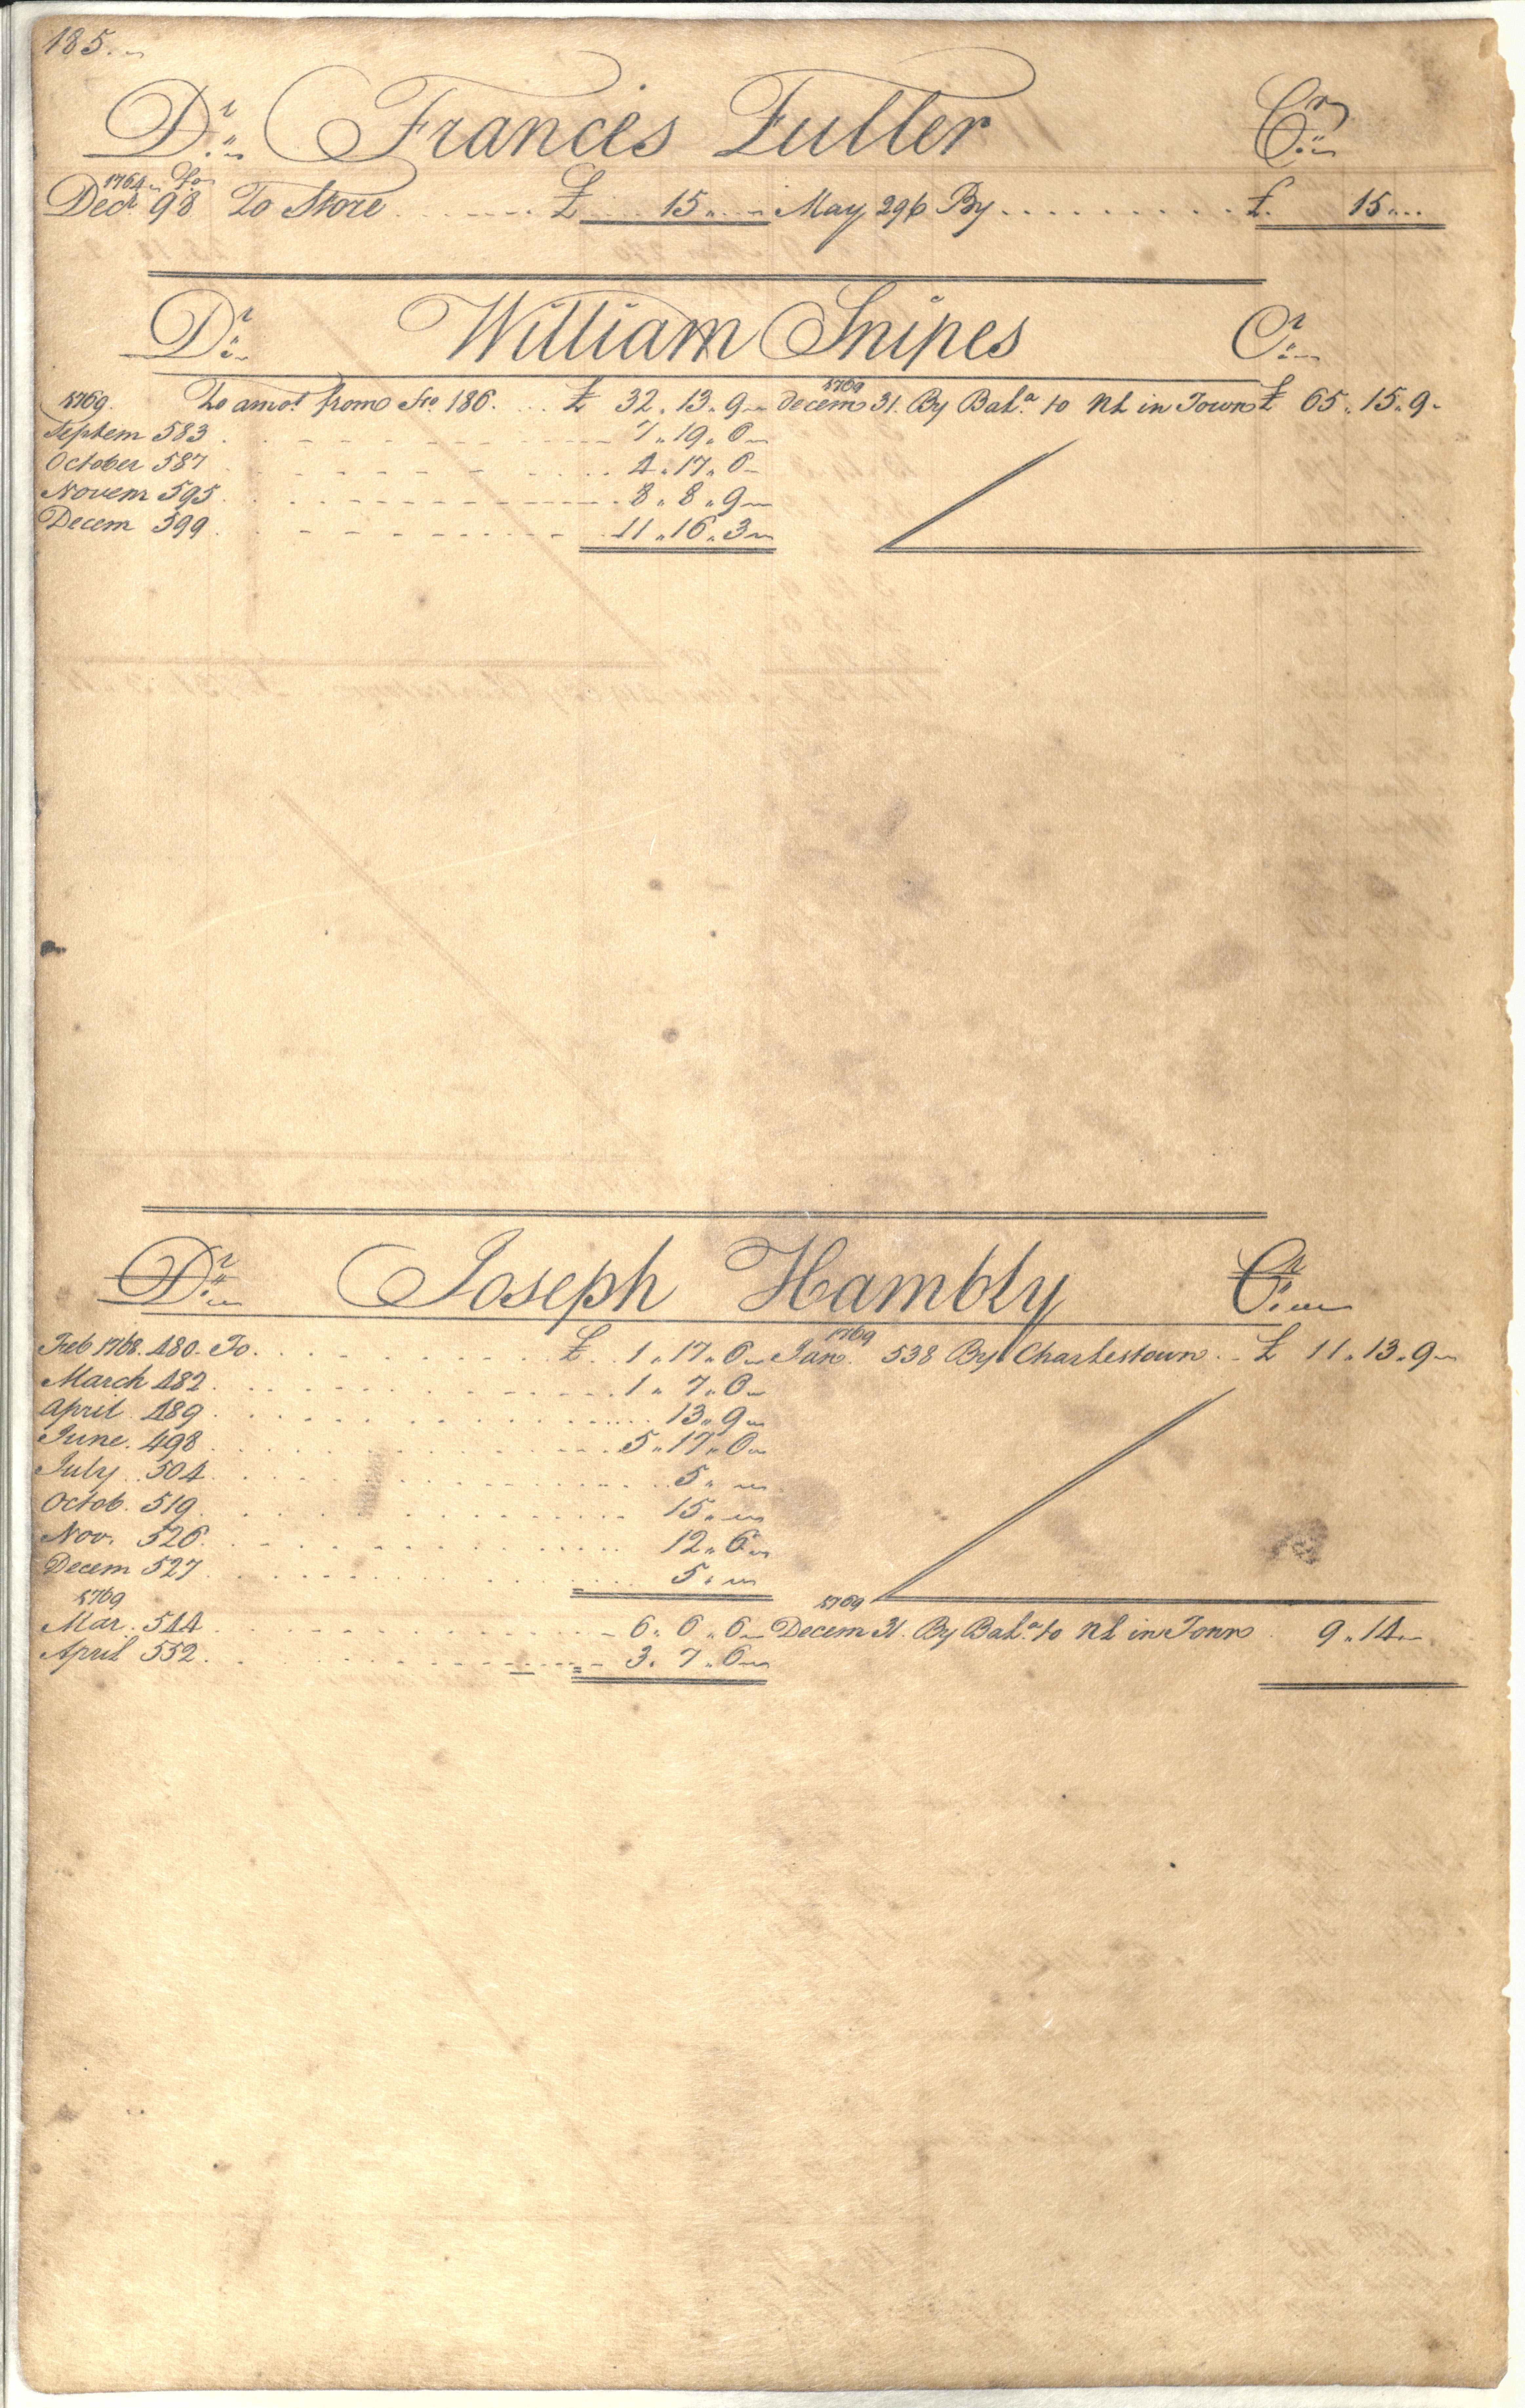 Plowden Weston's Business Ledger, page 185